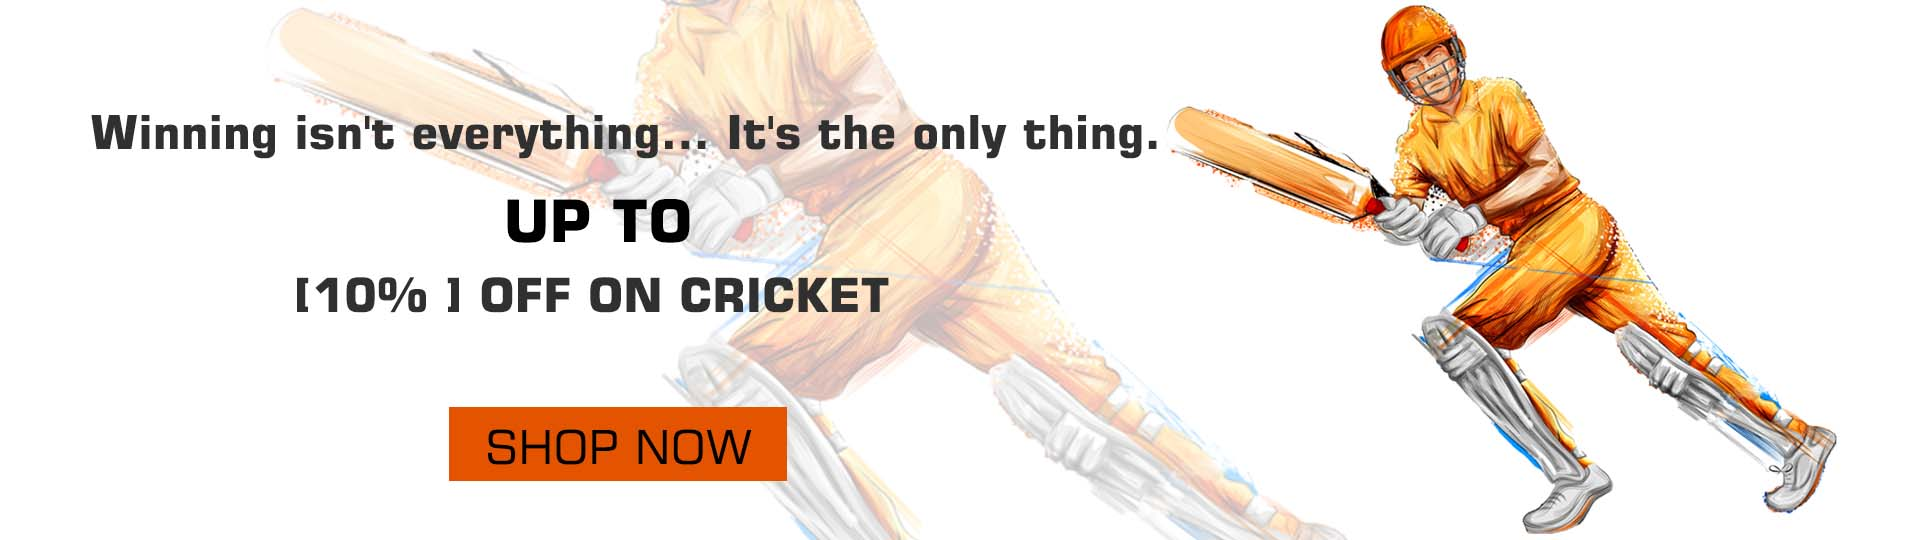 Cricket Discount